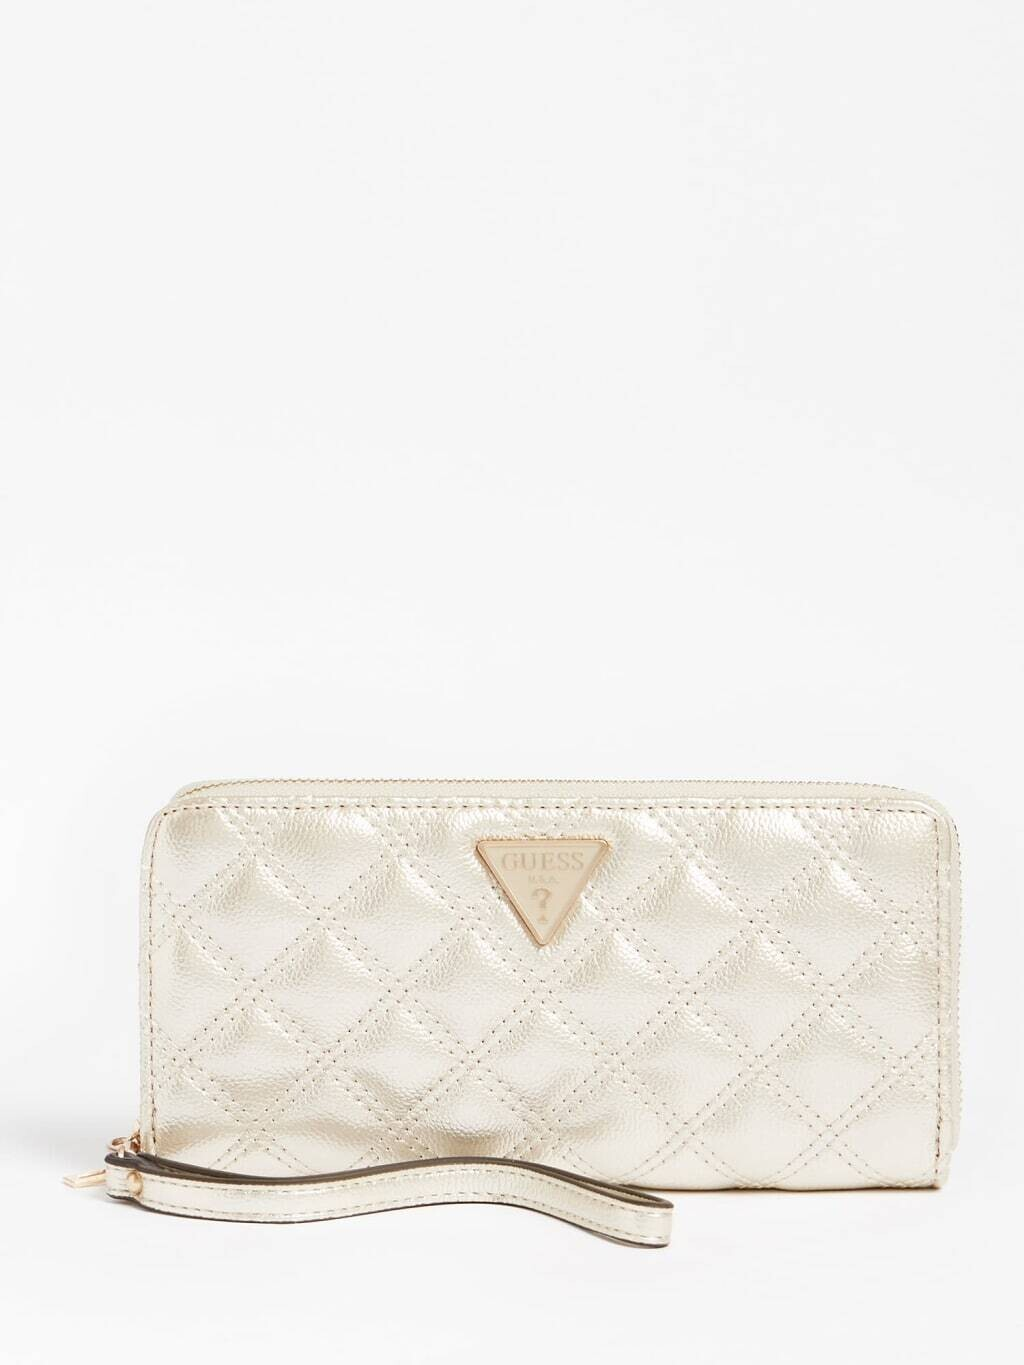 GUESS CESSILLY TOP ZIP CHAMPAGNE WALLET